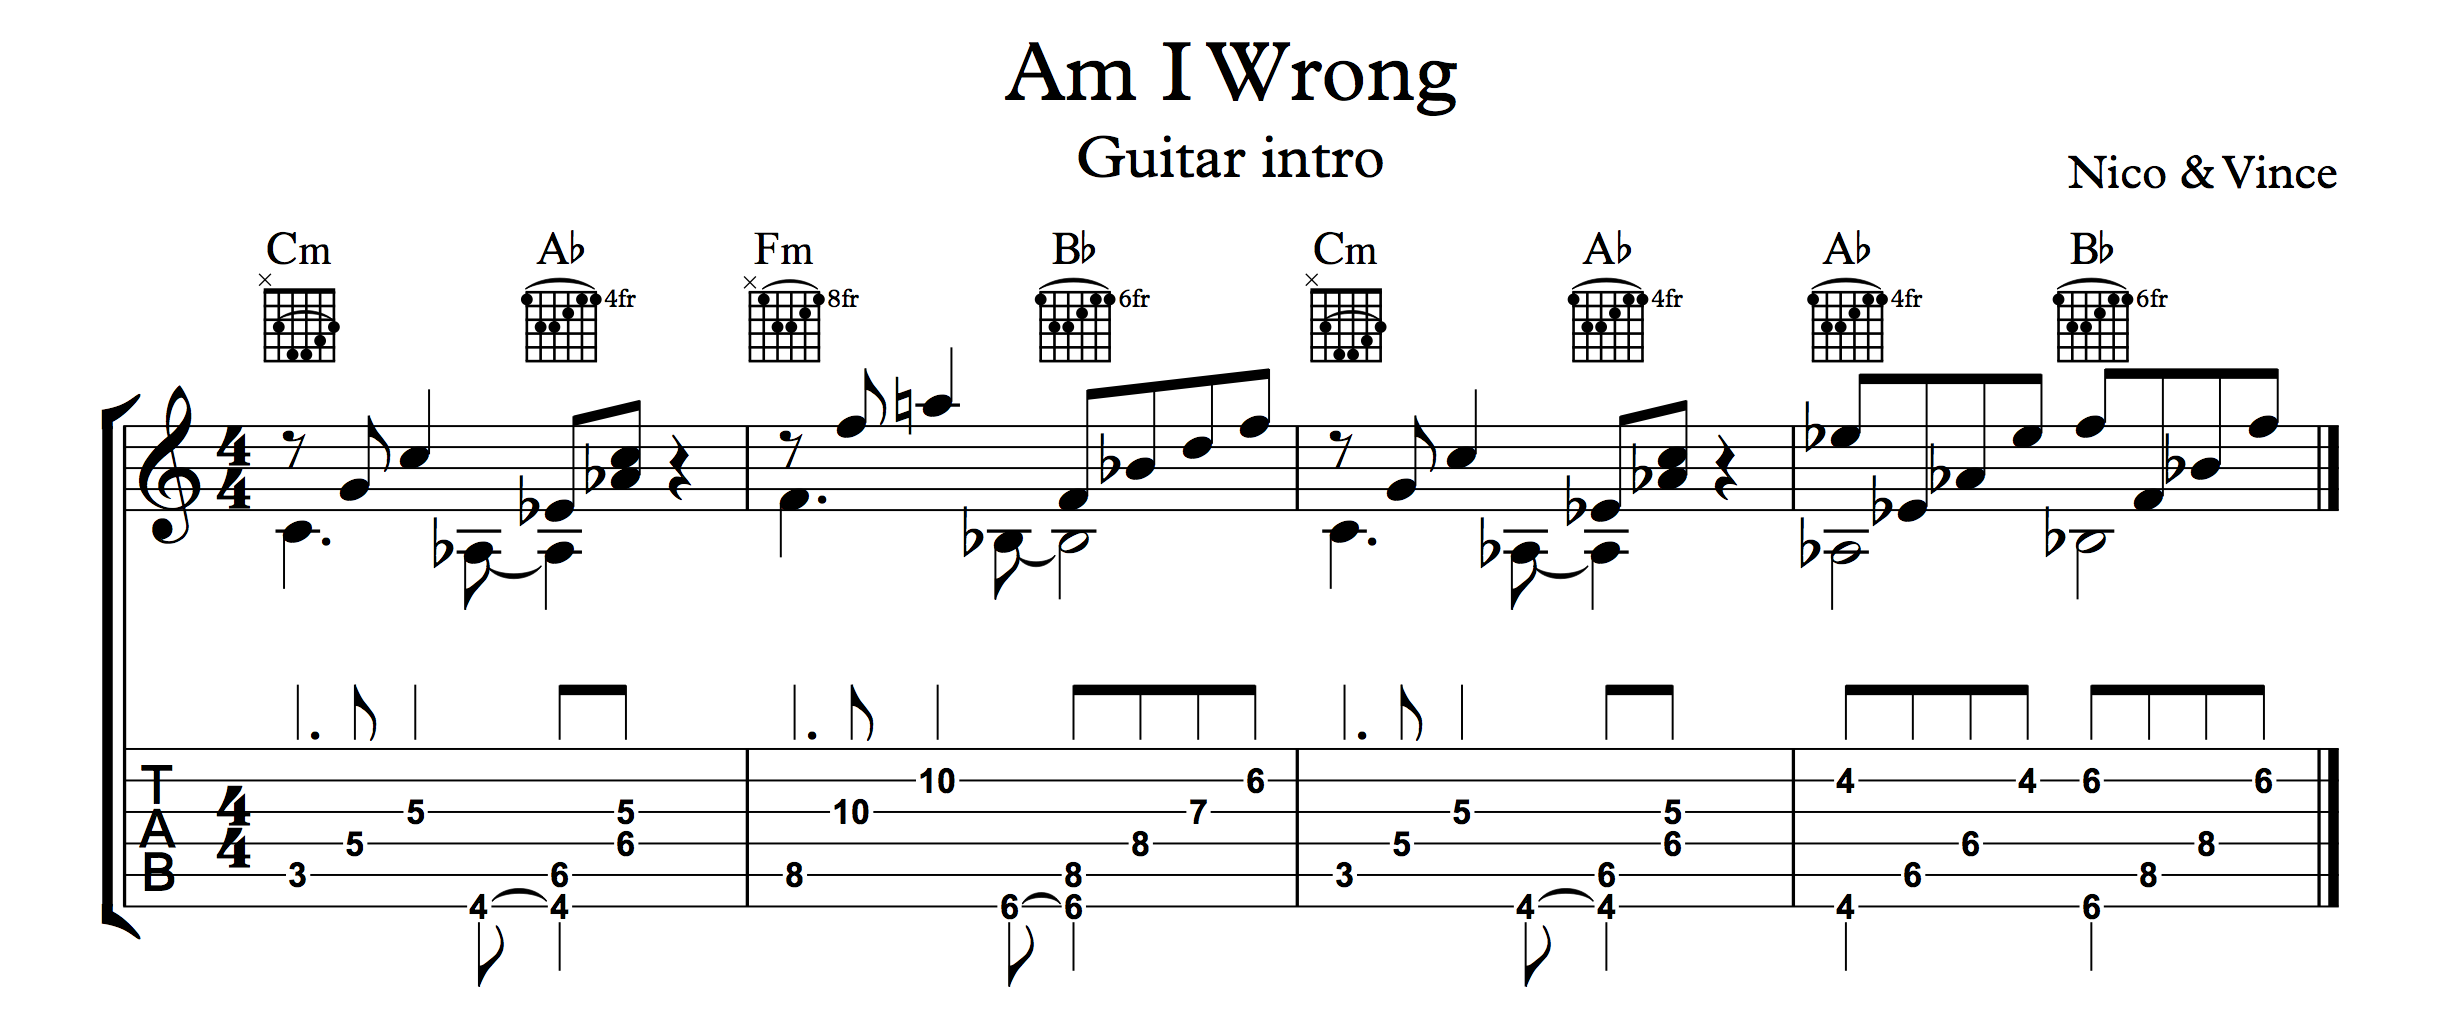 Am I Wrong By Nico Vinz Includes Guitar Intro Lyrics And Guitar Chords